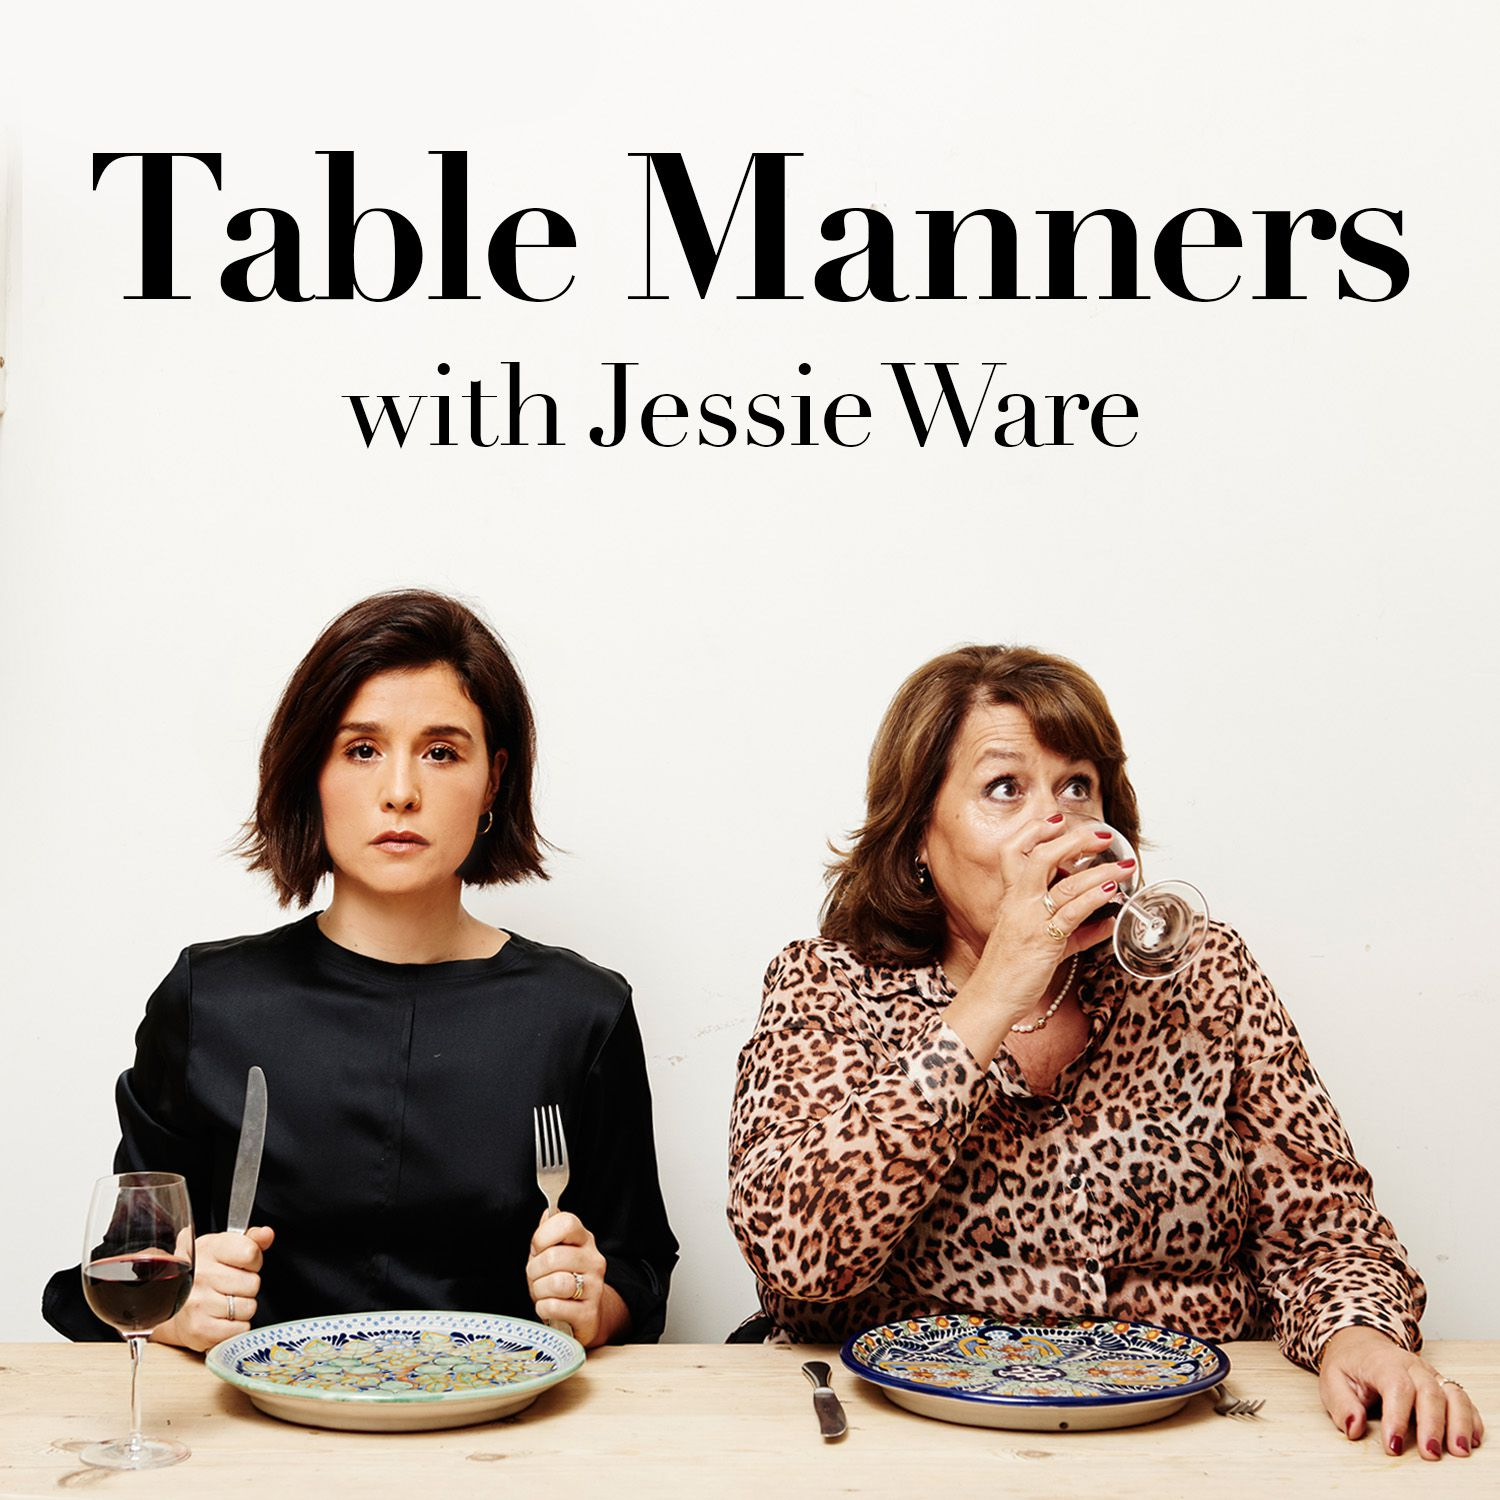 Two women sitting at a dinner table